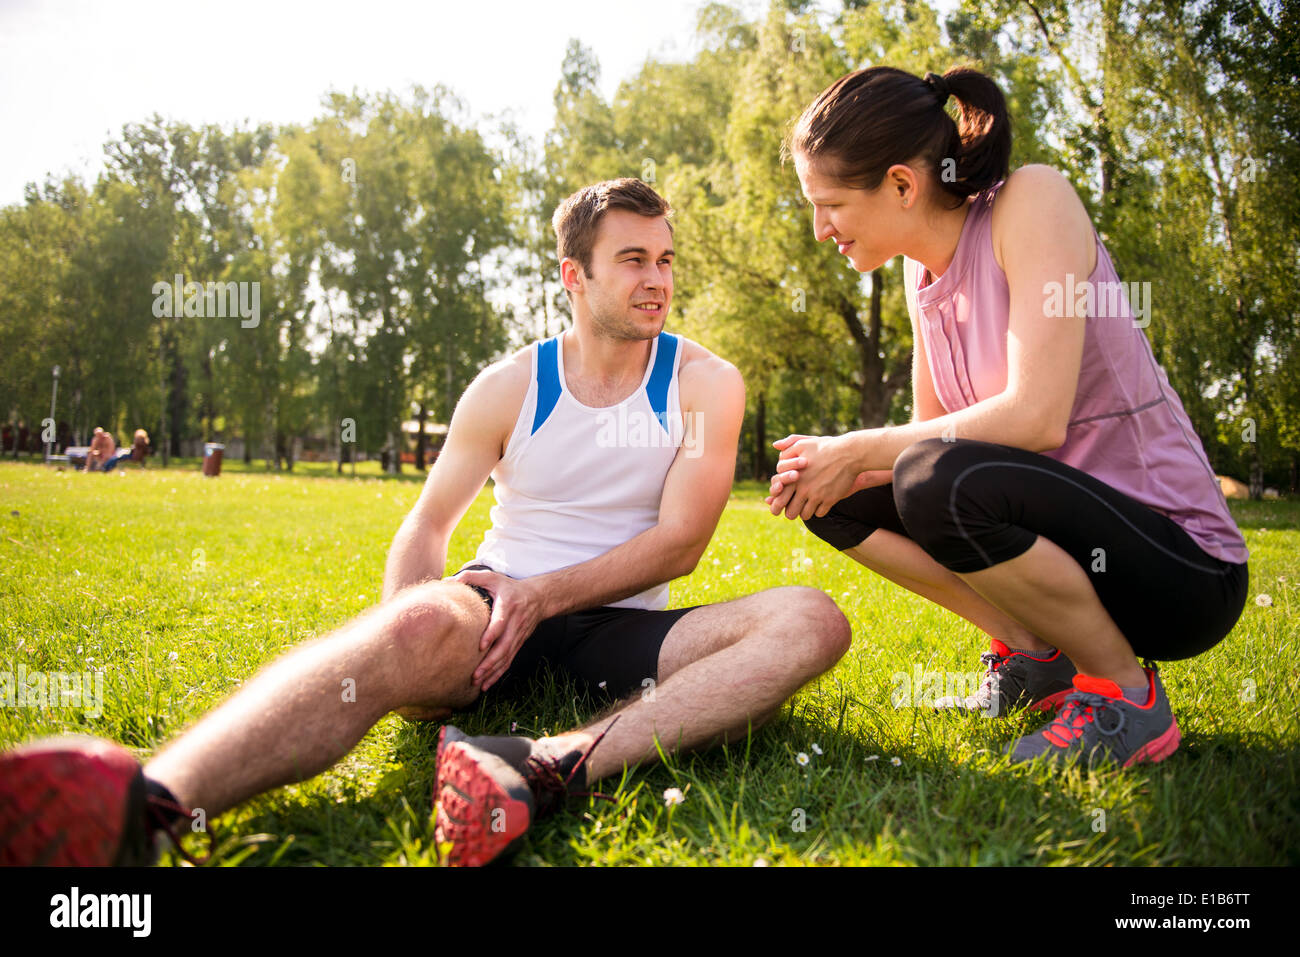 Woman is helping to young man with injured thigh from sport activity - Stock Image